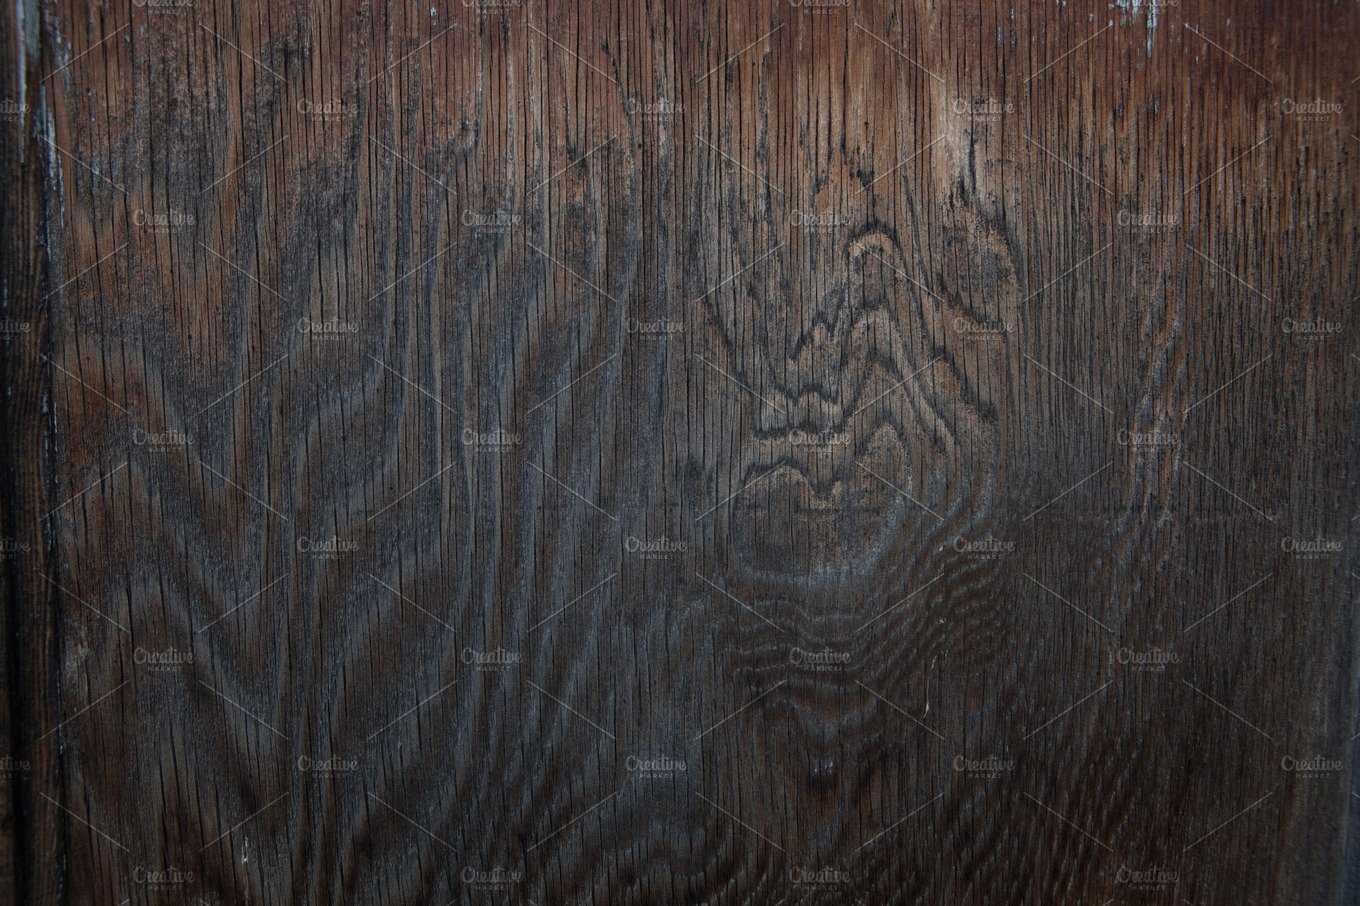 Rustic Wood Texture - Dark Brown ~ Abstract Photos ...